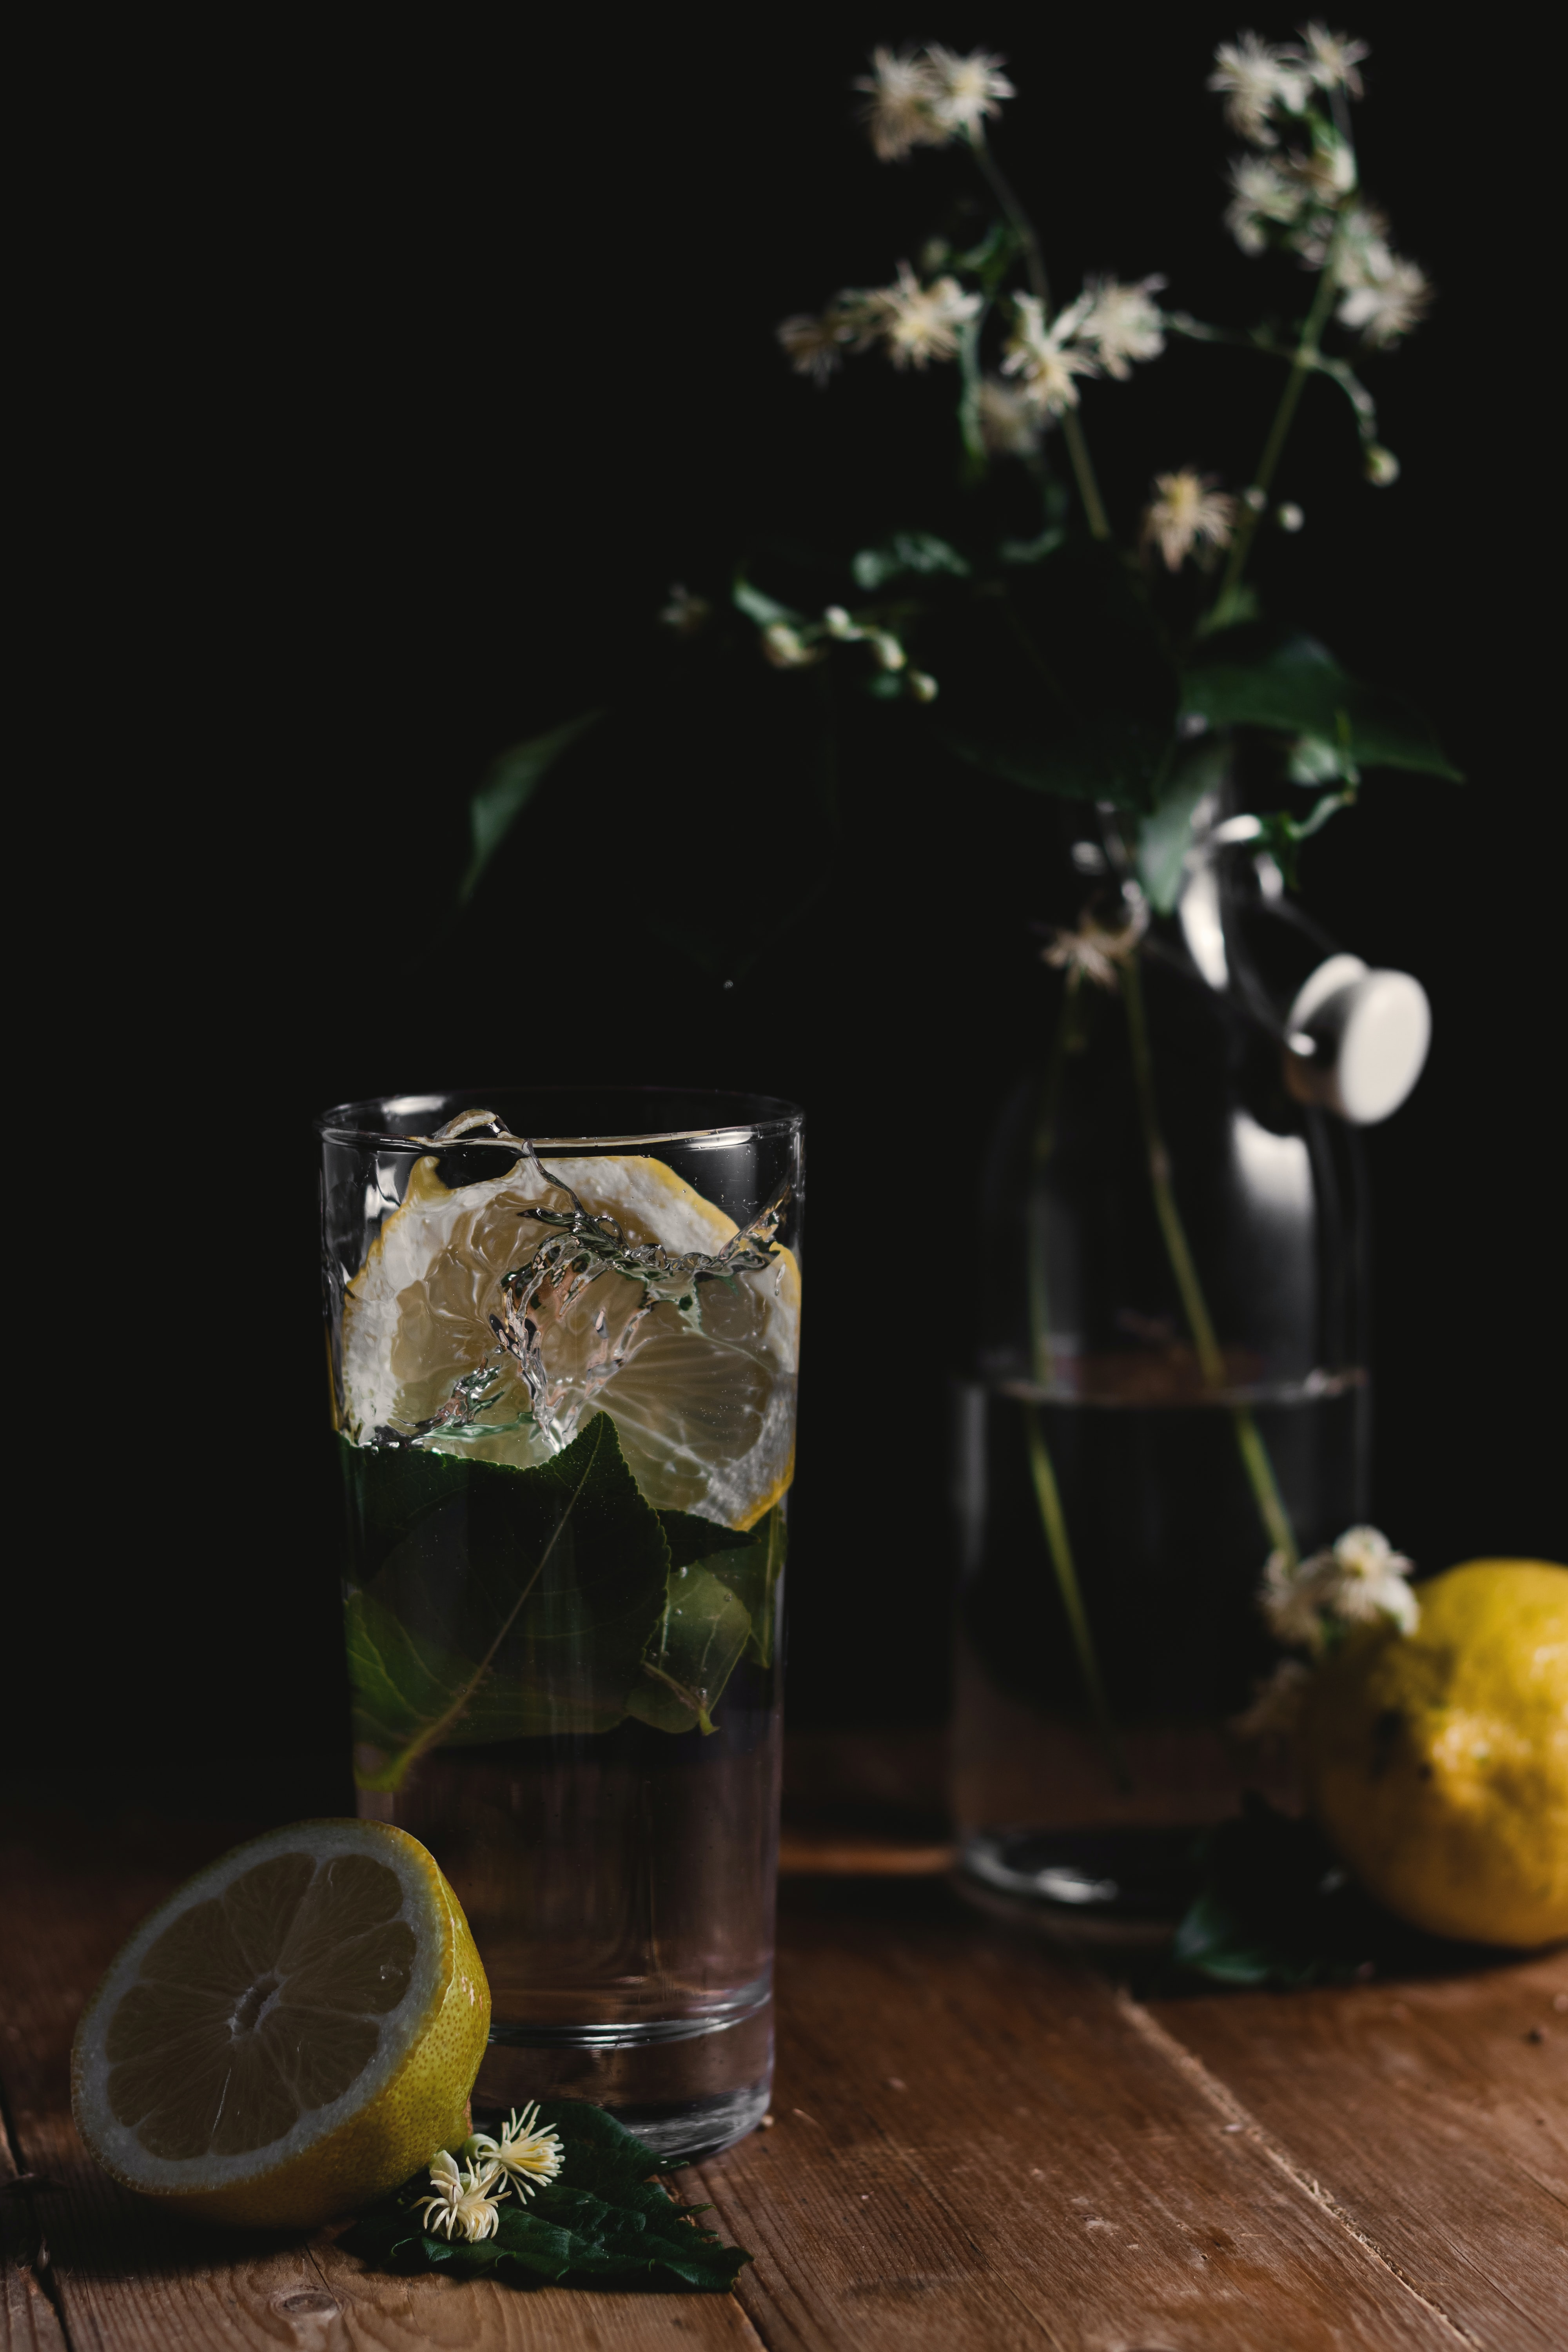 clear drinking glass and sliced lemons on wooden surface